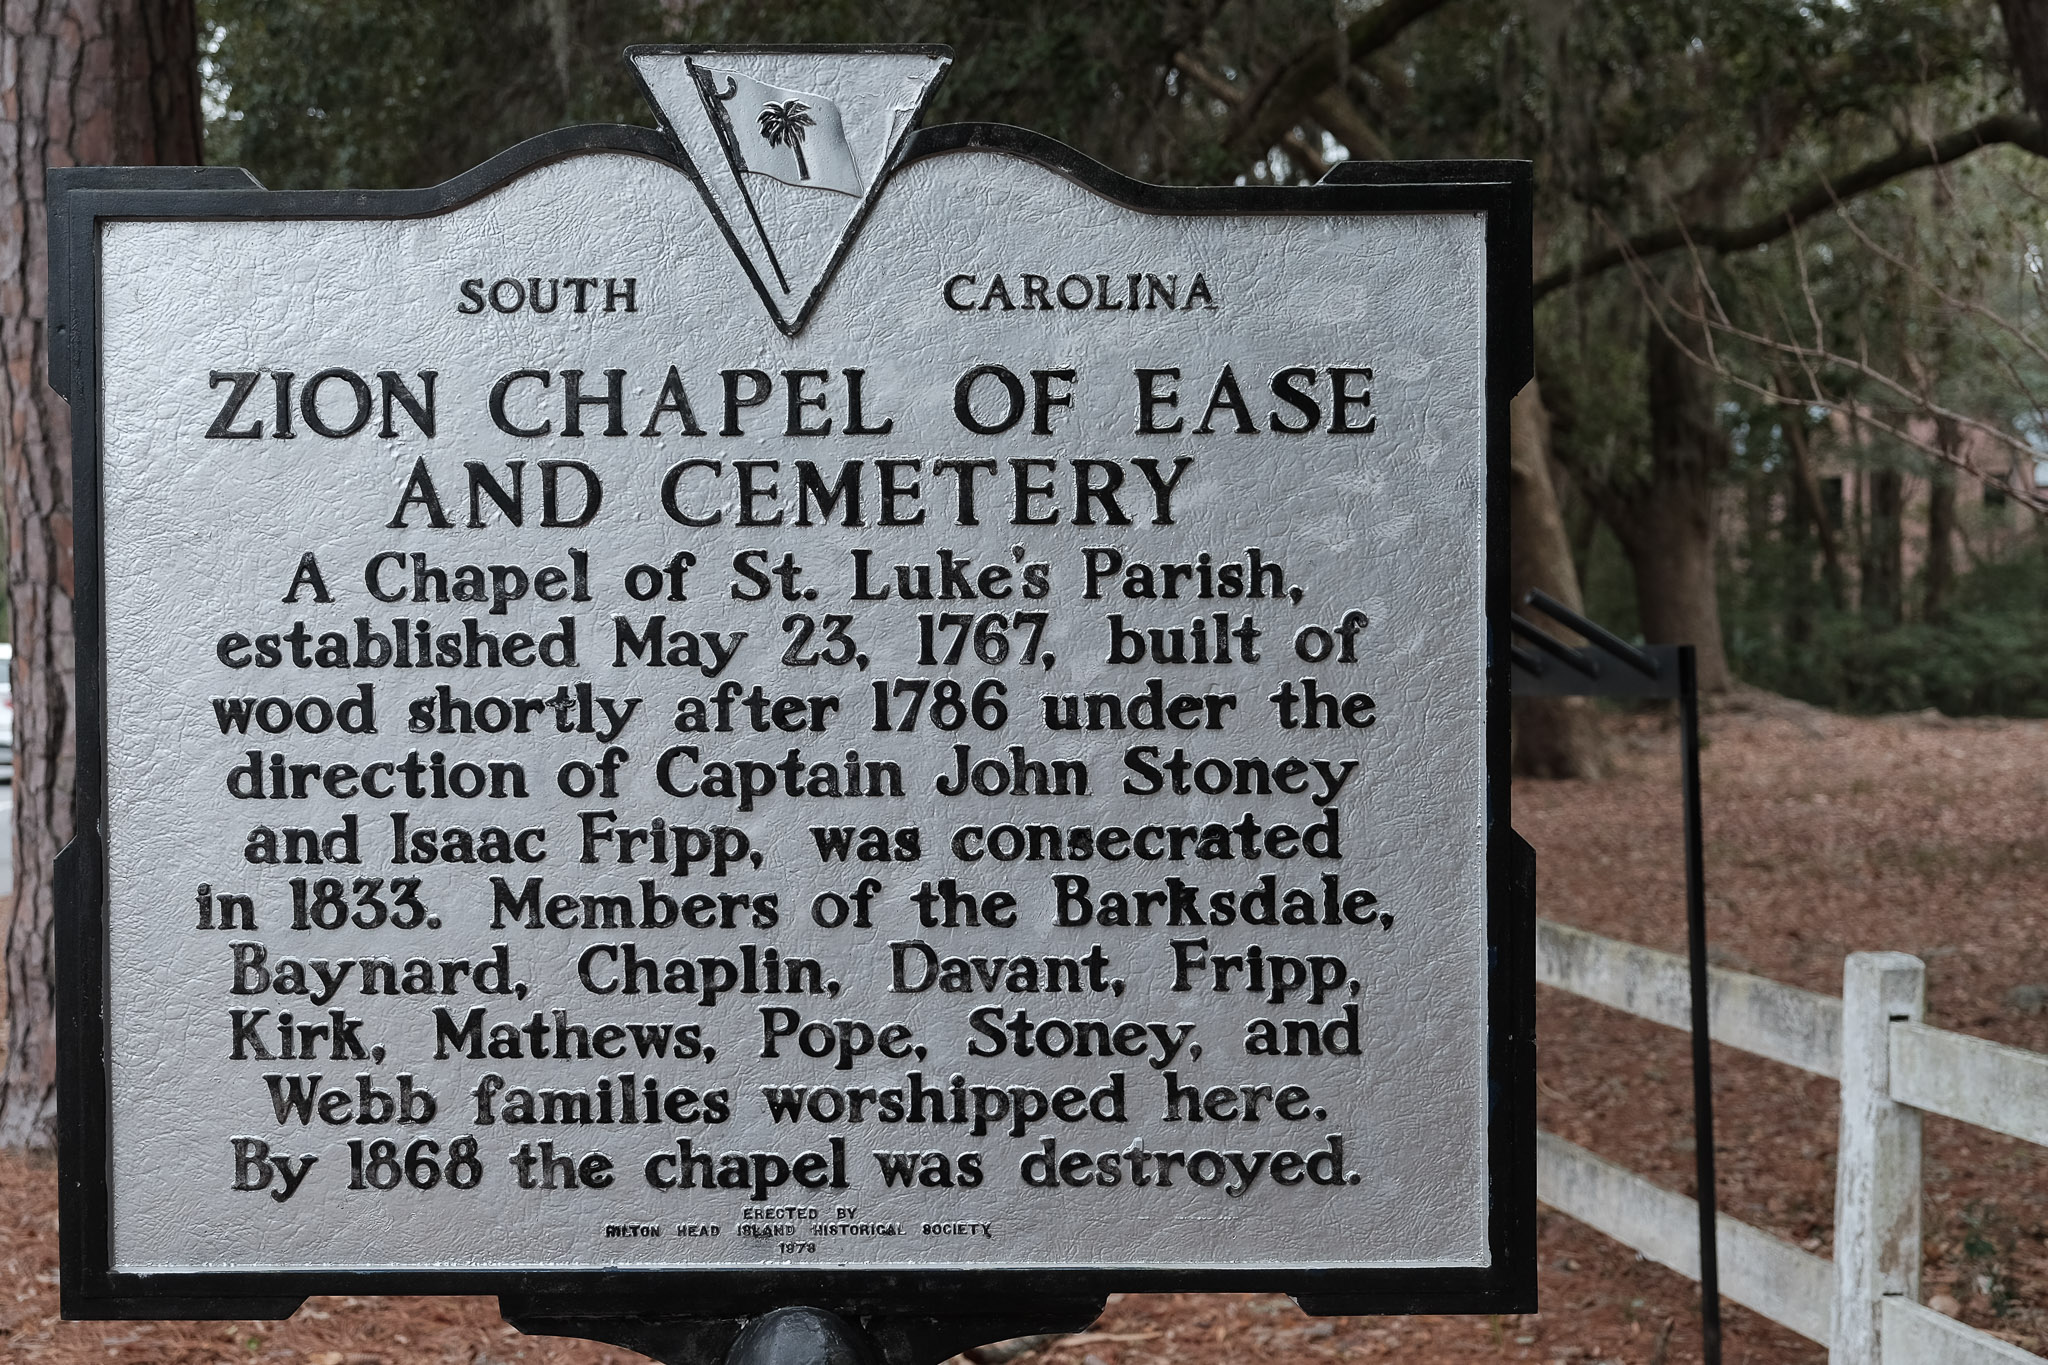 Historical marker for the Zion Chapel of Ease and Cemetery